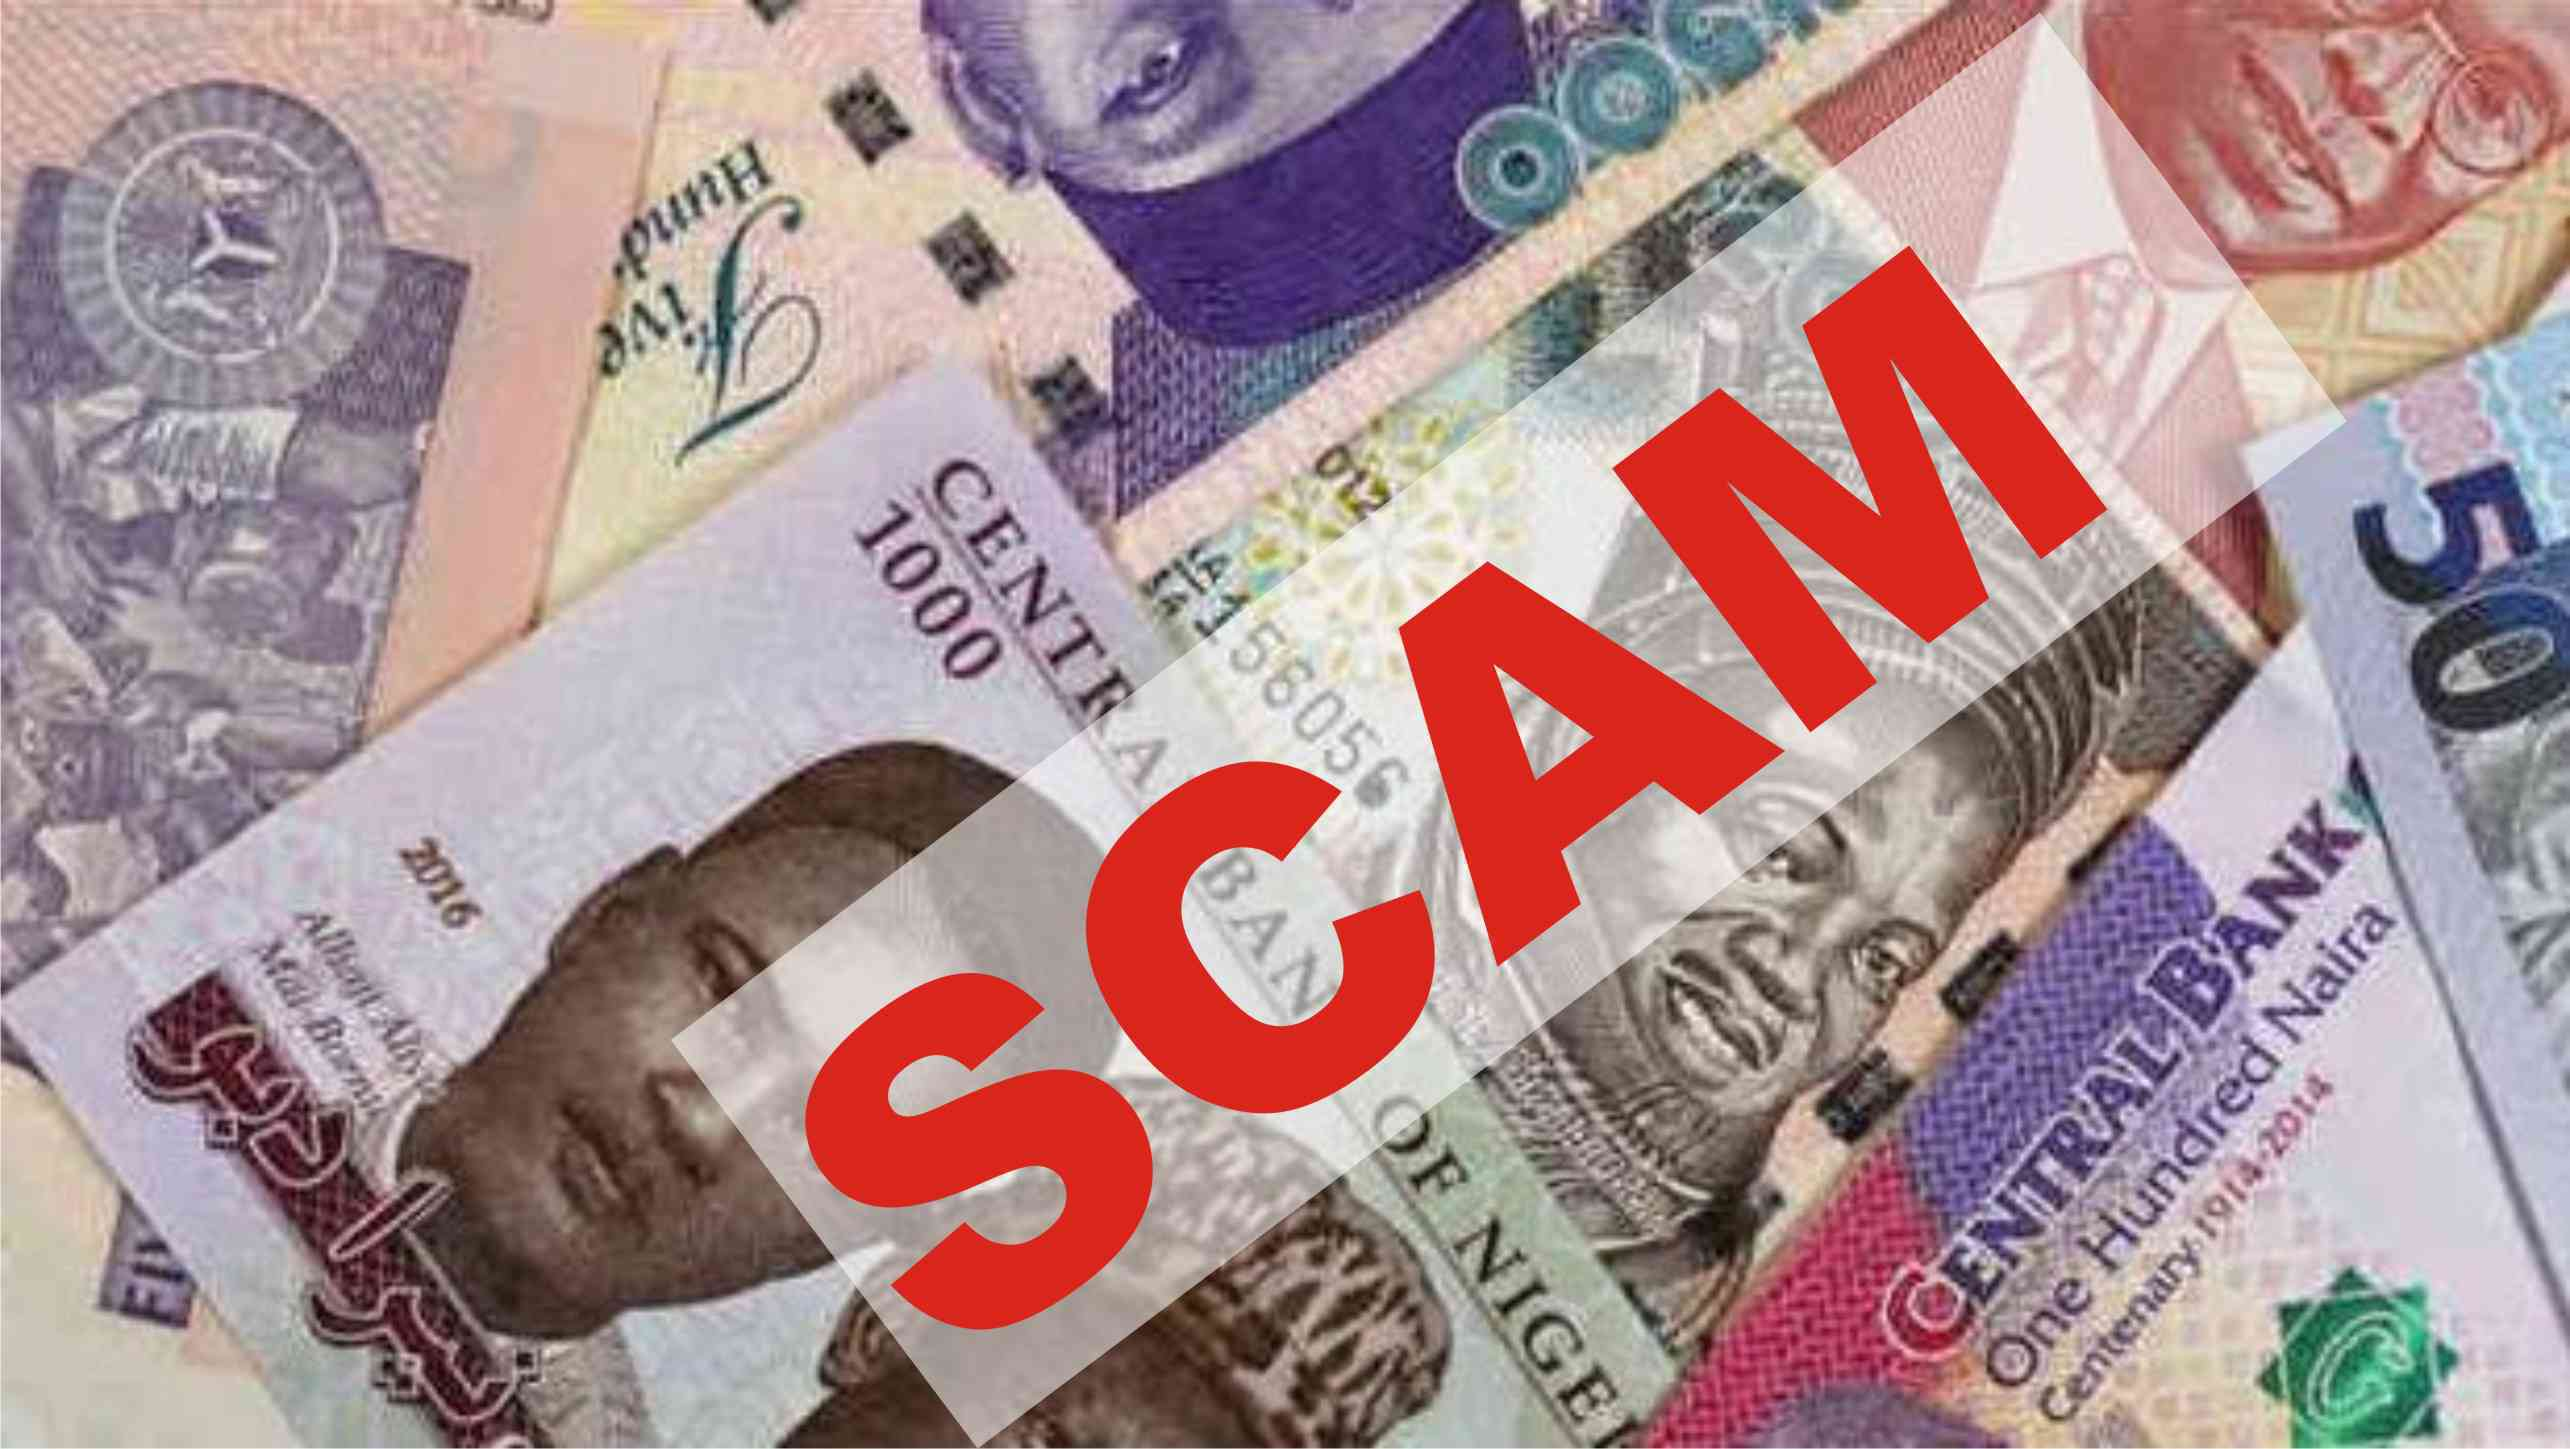 Free Money: Increased Scam And Fraudulence On Social Media